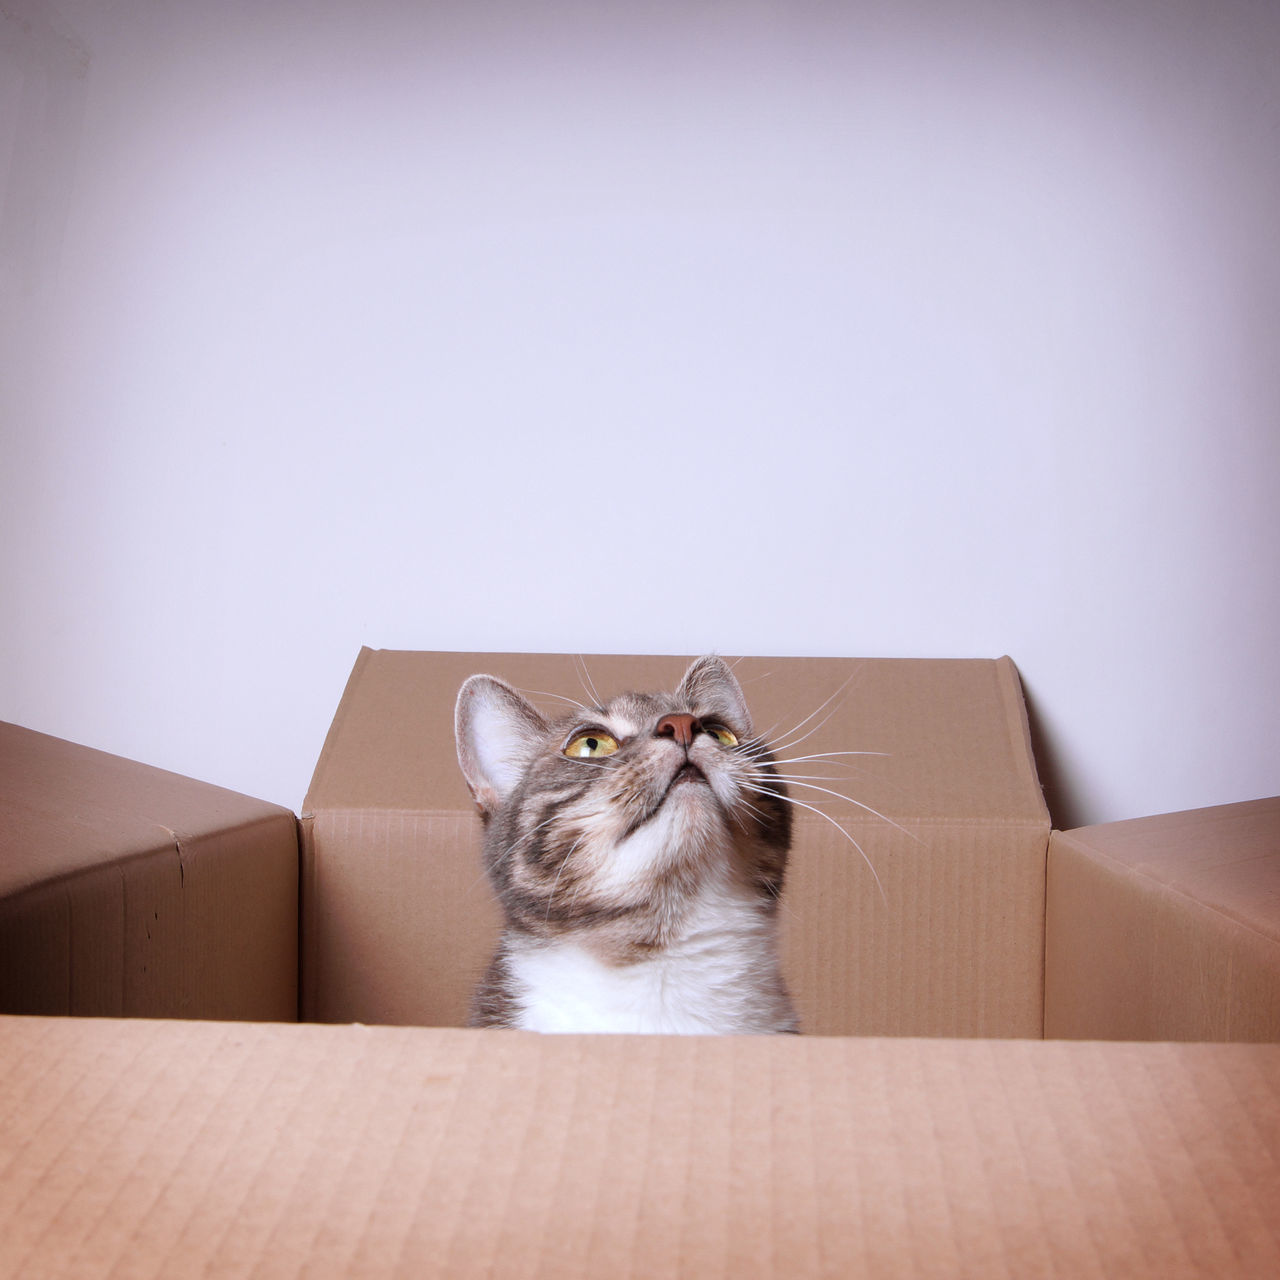 Beautiful stock photos of funny animal, Animal Themes, Box - Container, Cardboard Box, Cat